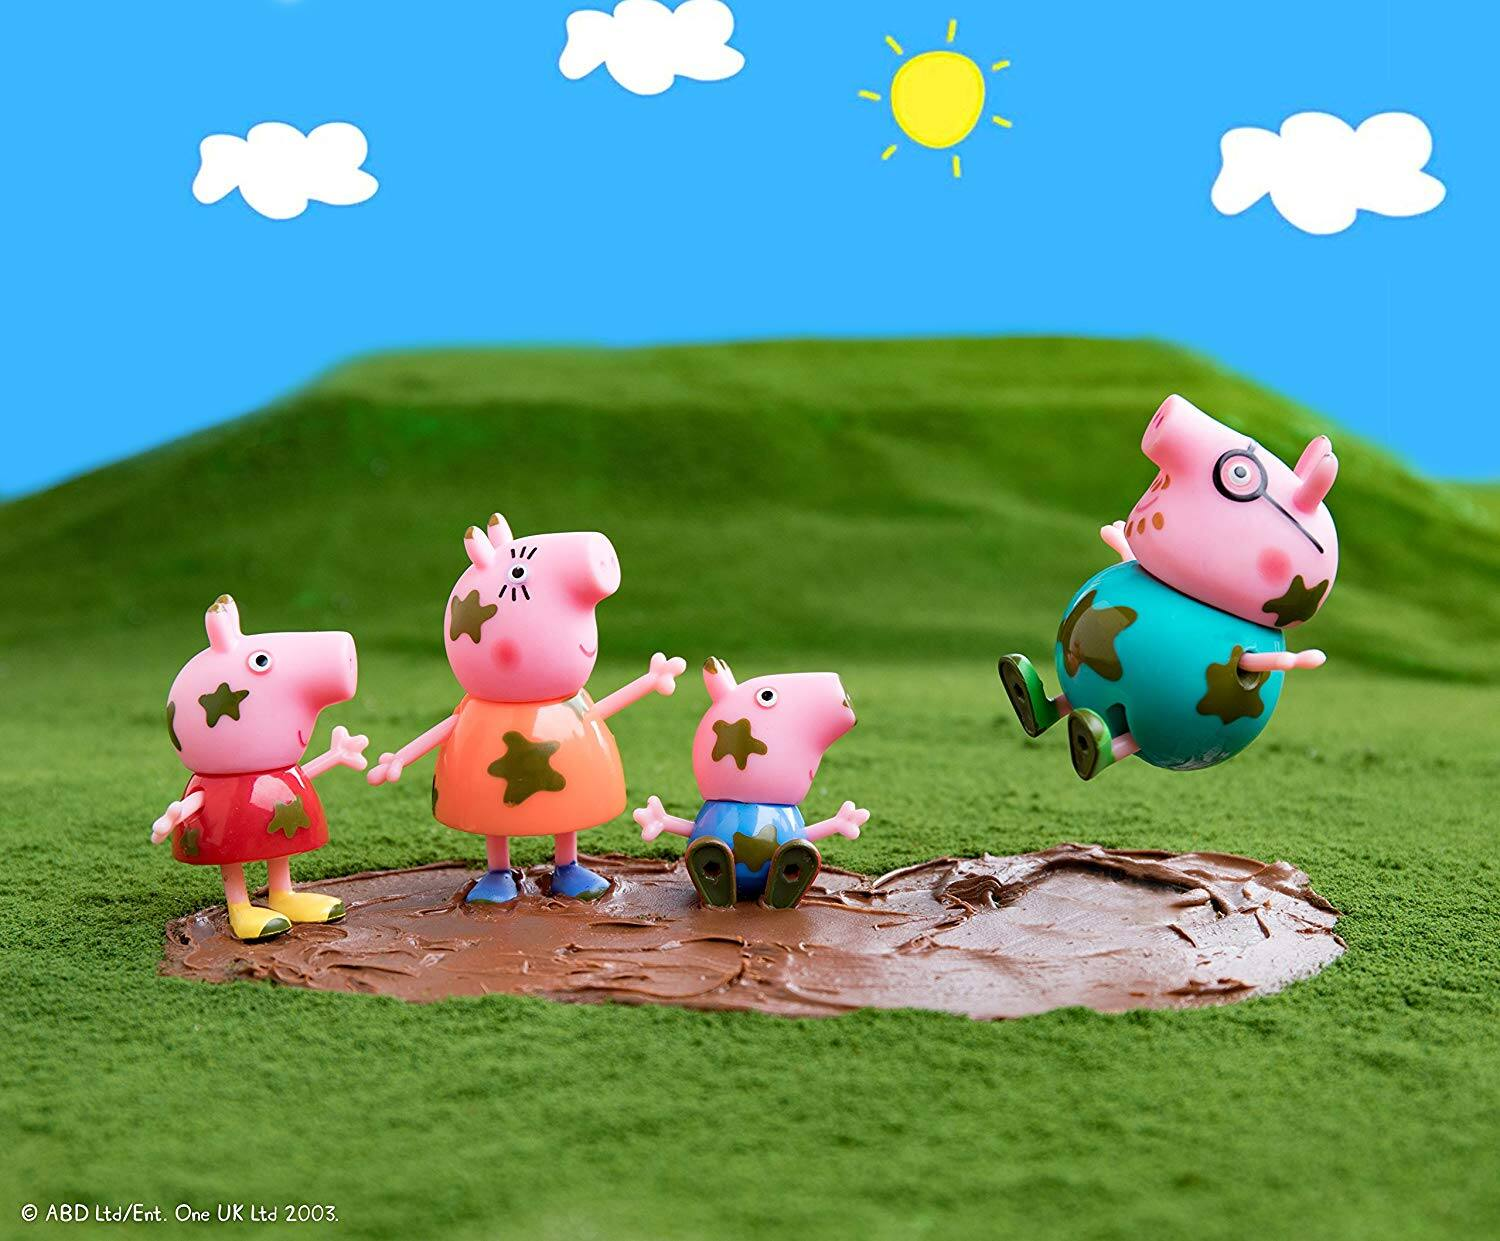 Amazon Prime: Peppa Pig Muddy Puddles Family 4-Figure Pack $5.50 + Free Shipping